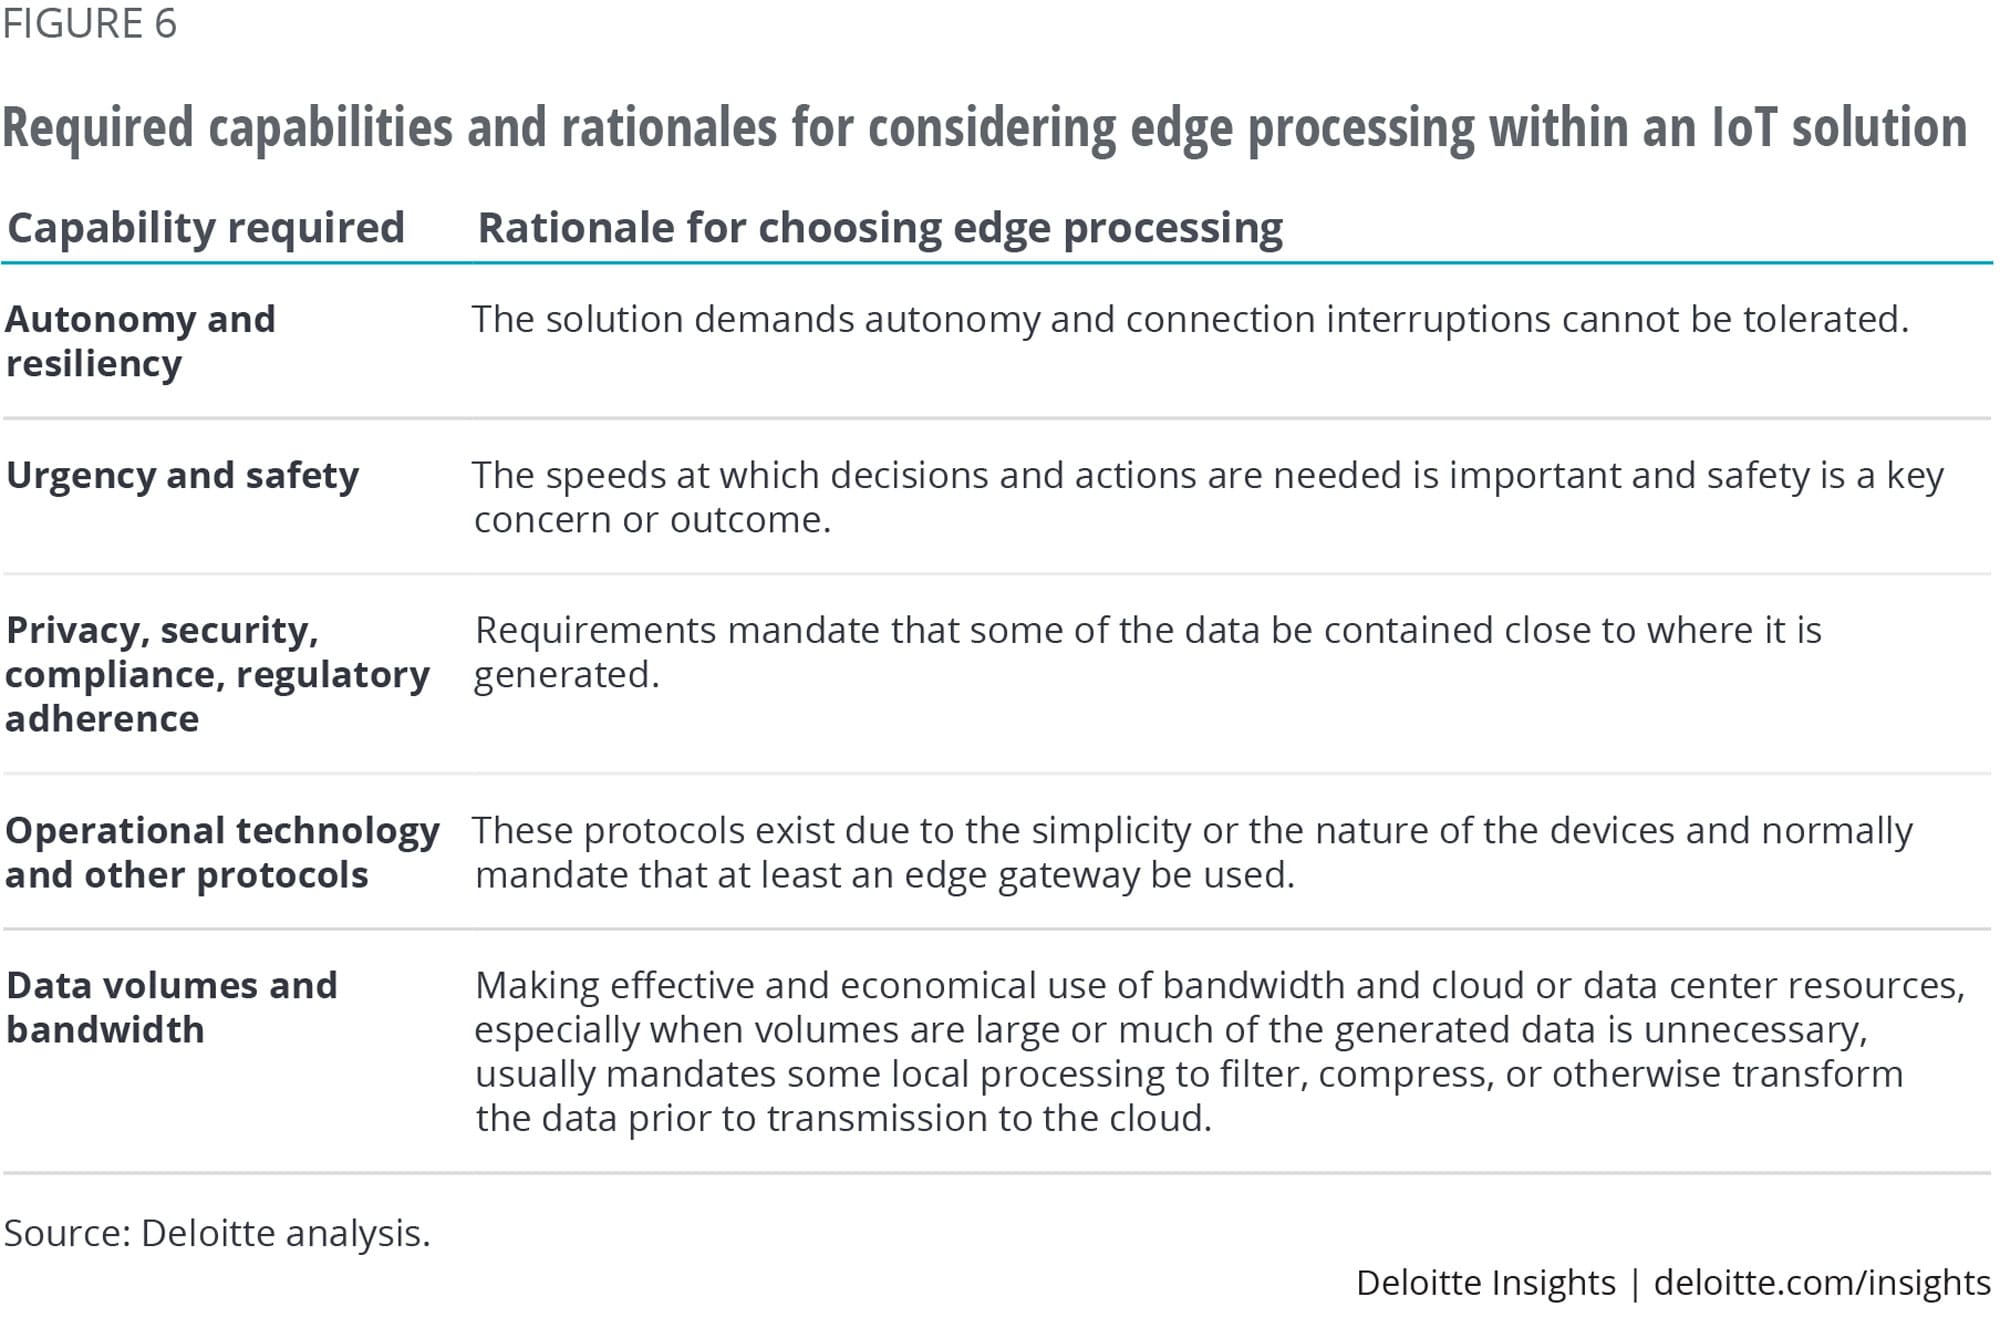 Required capabilities and rationales for considering edge processing within an IoT solution